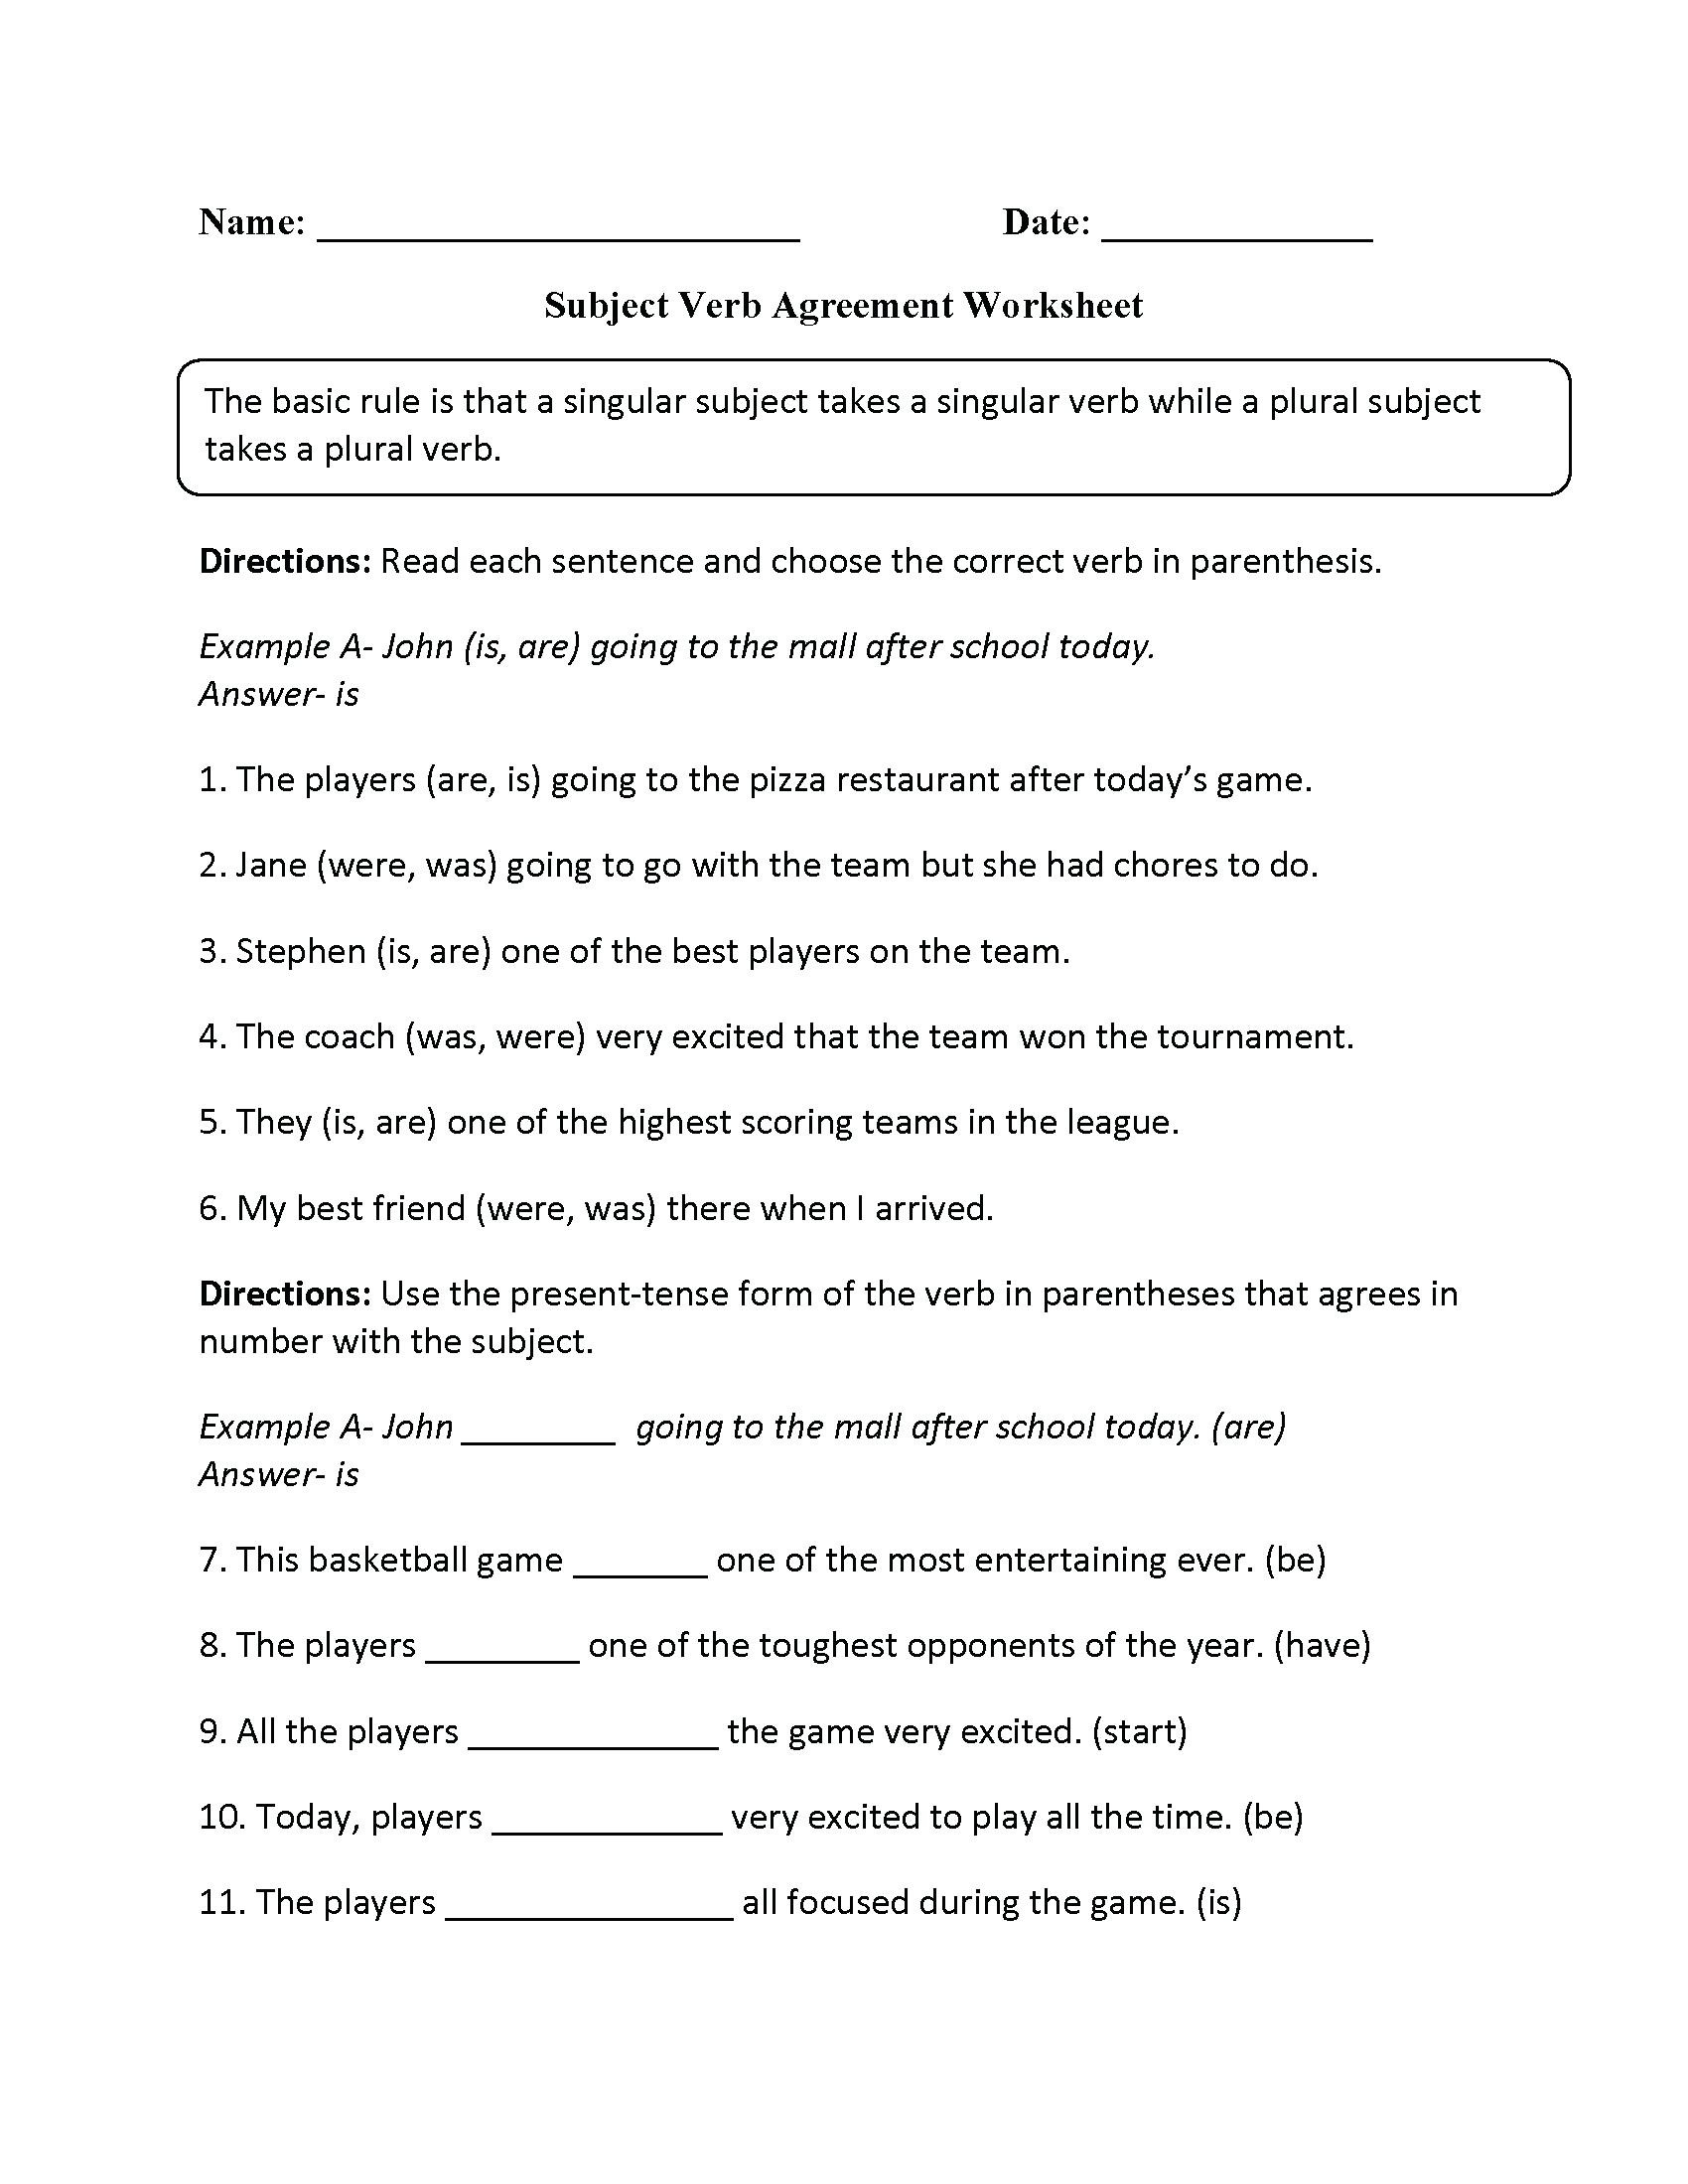 4th Grade Grammar Worksheets Pdf Monthly Archives June 2020 English Reading Prehension